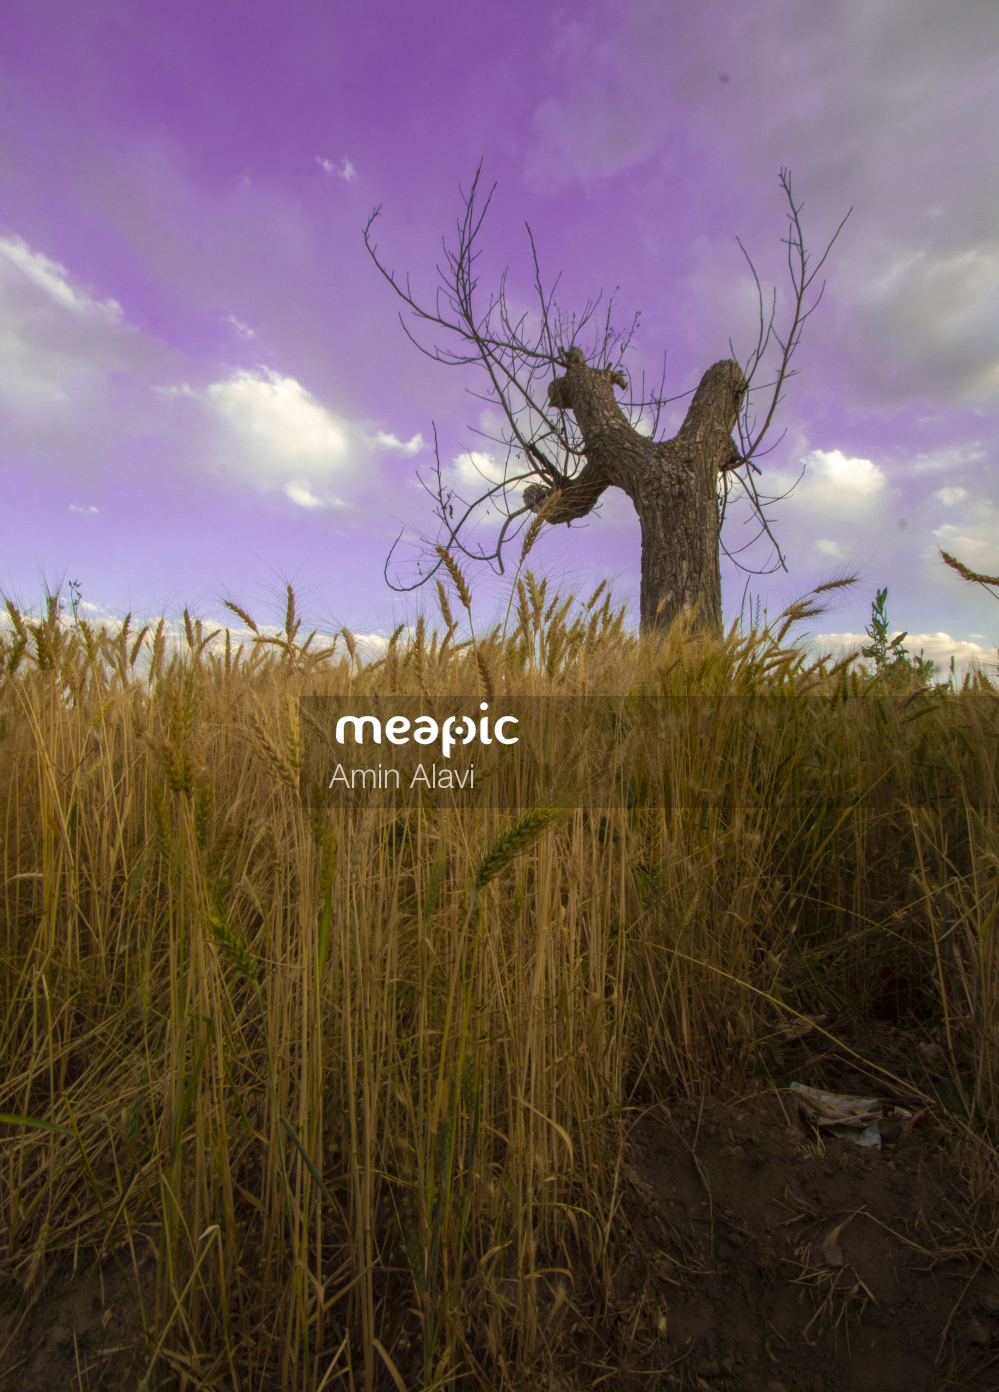 I Am Not Really Confident, But Flock Of Birds Standing On Top Of A Grass Covered Field Stock Photo · Meapic